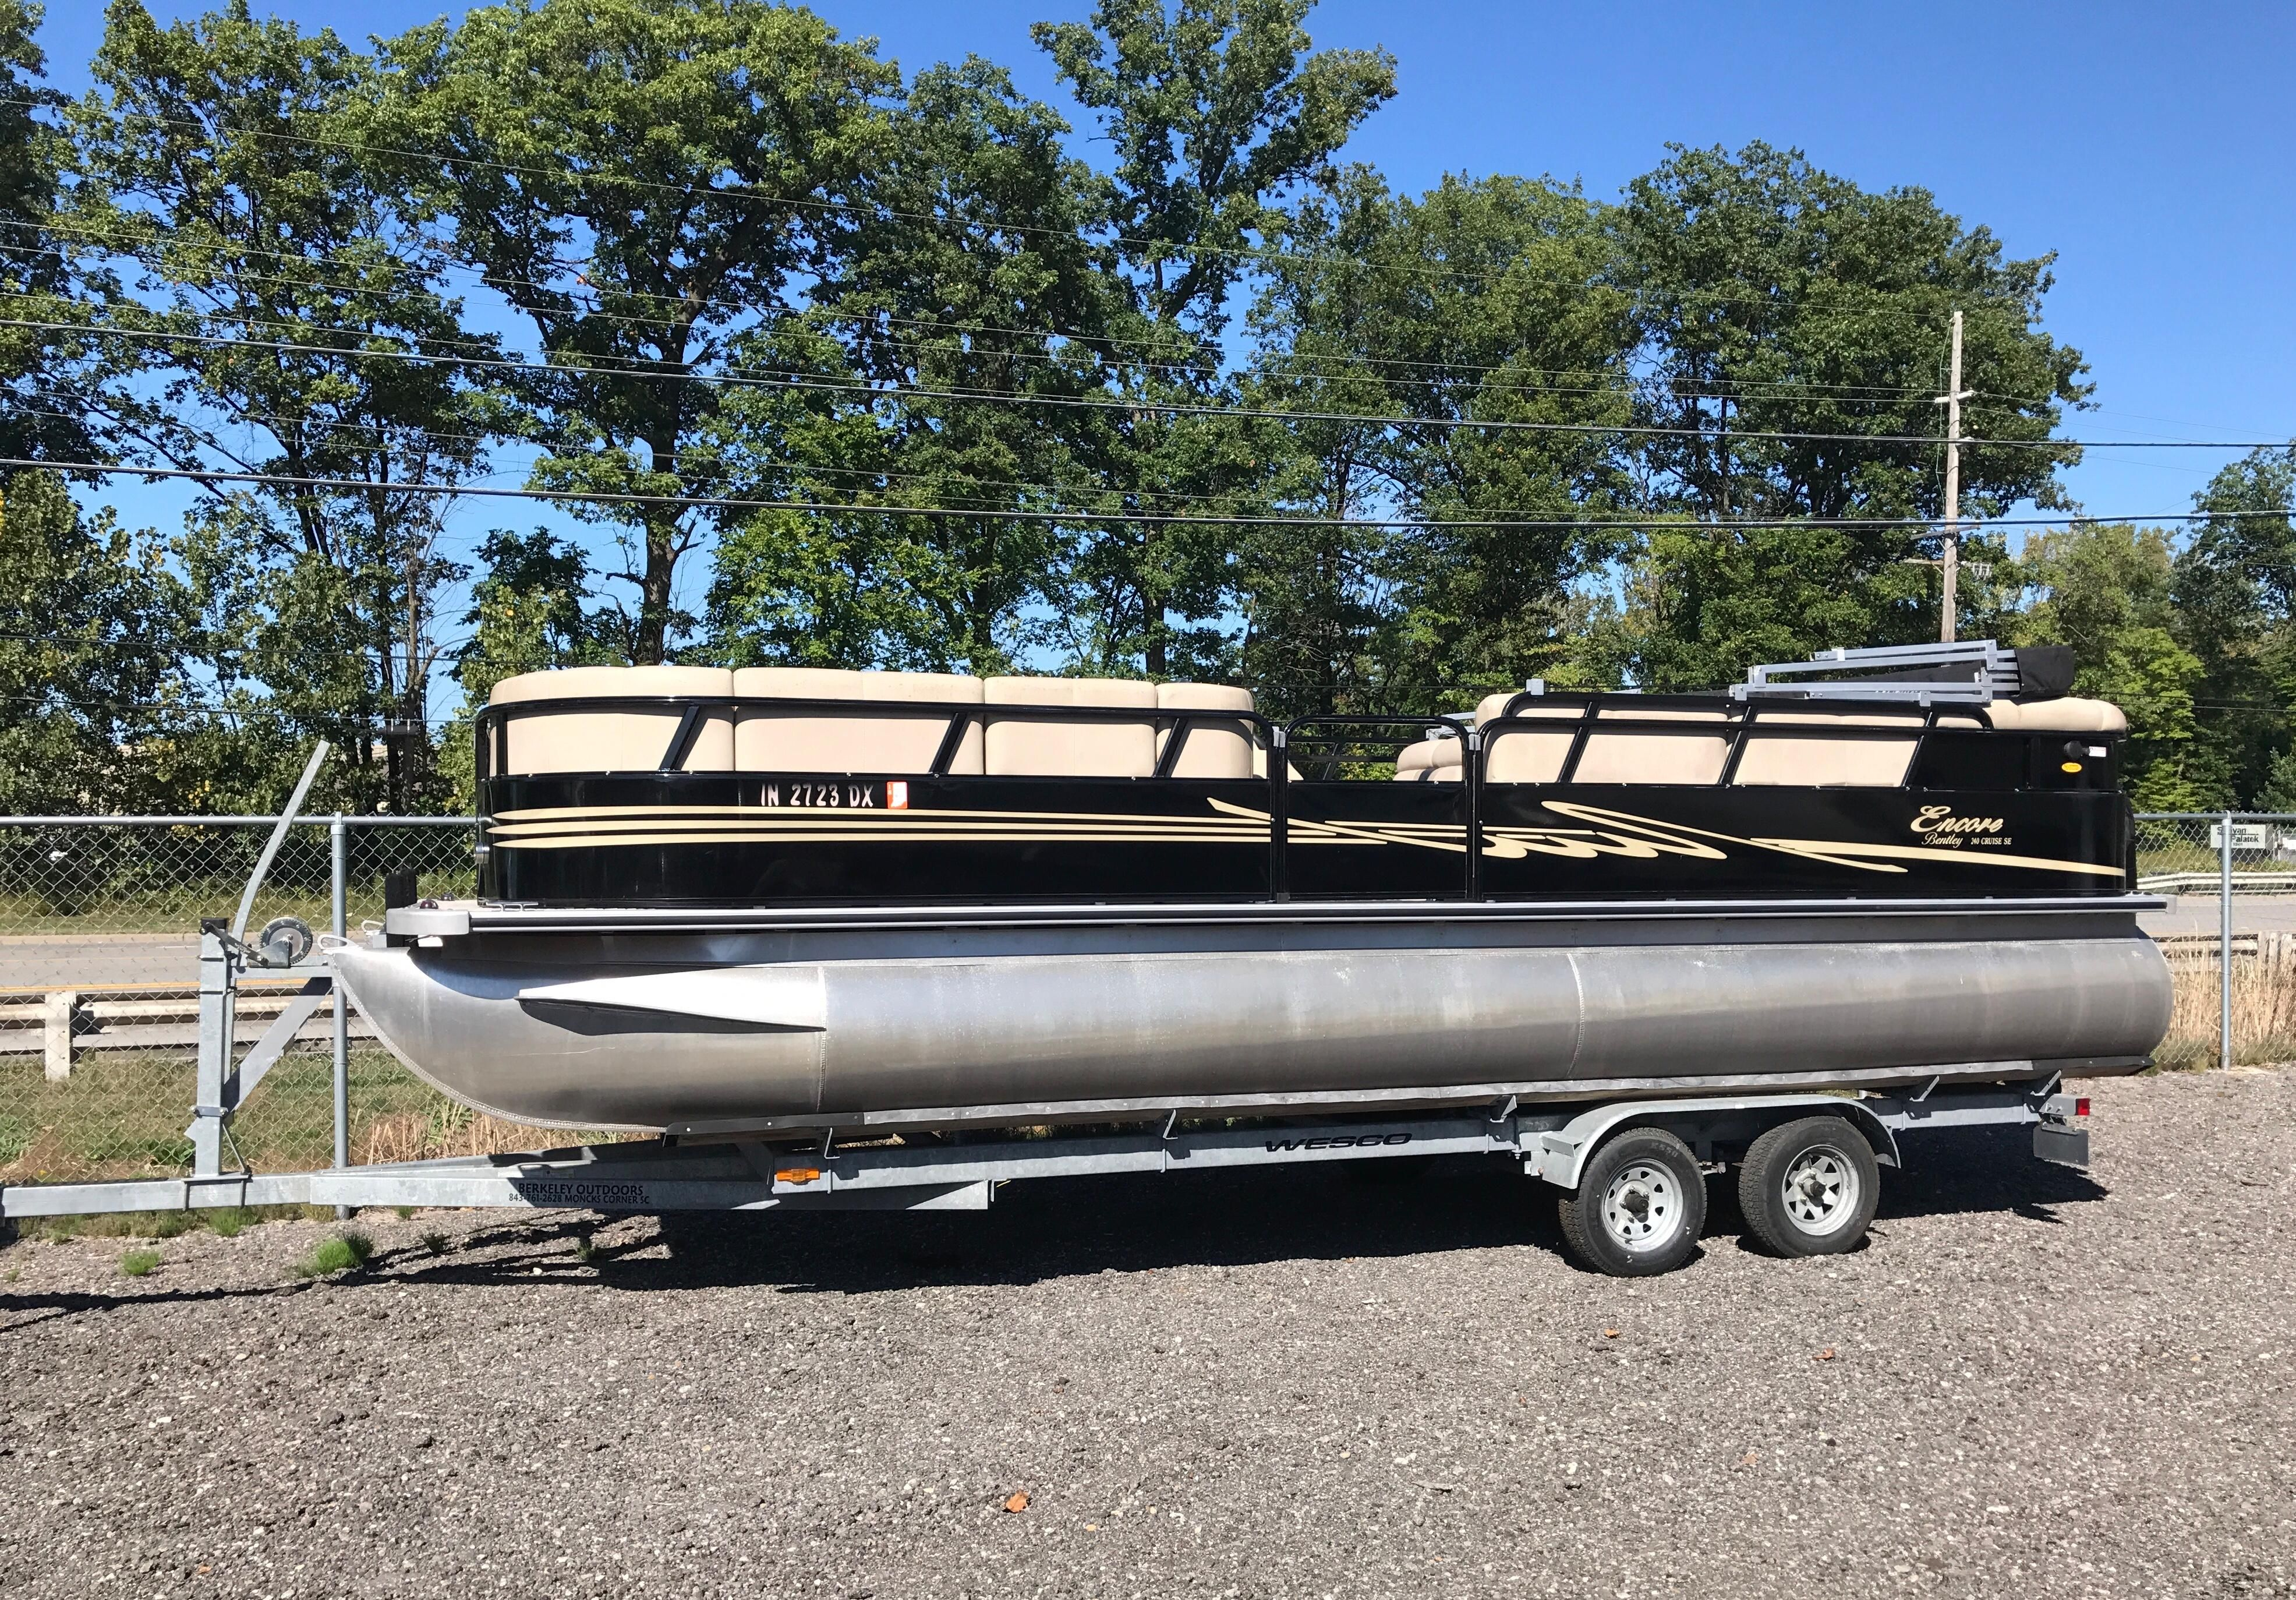 bentley dsc pontoon and gulf lake to dealers trailers cruise marine description